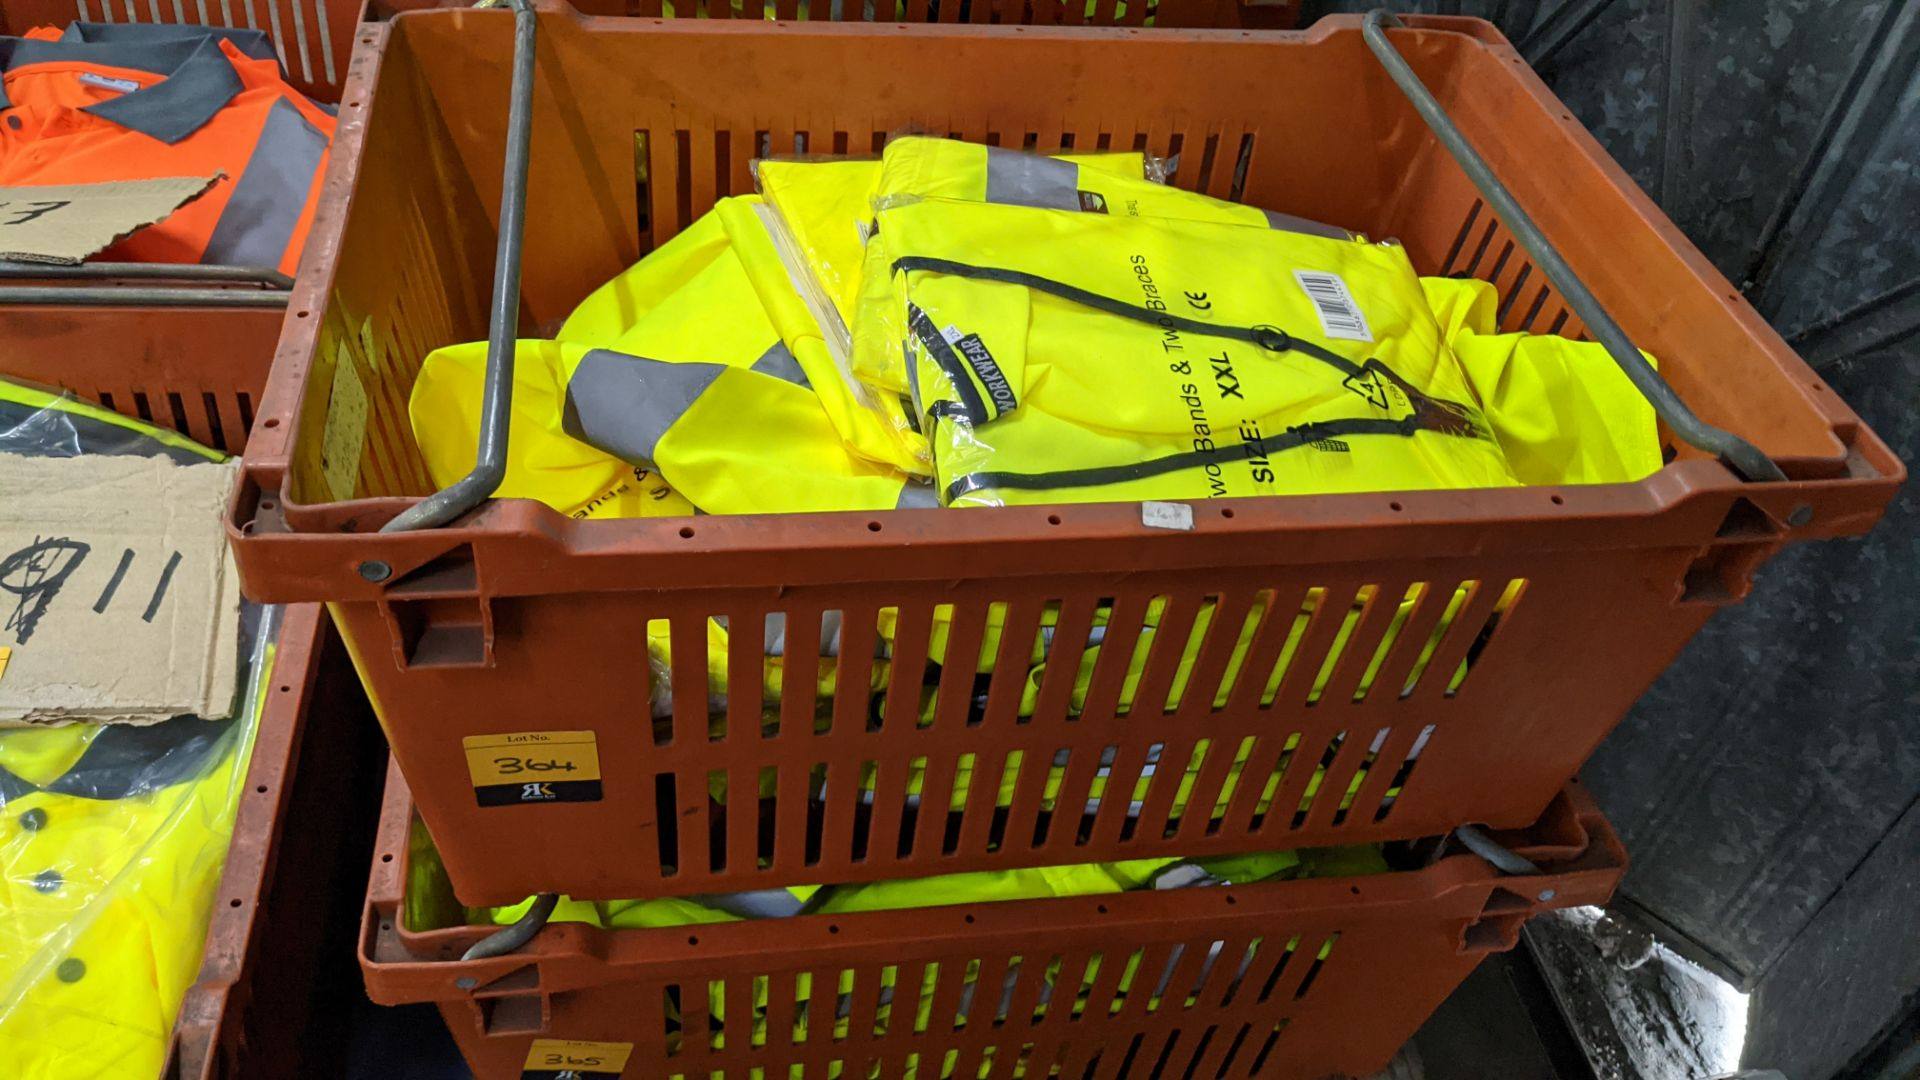 20 off yellow hi-vis vests - Image 2 of 4